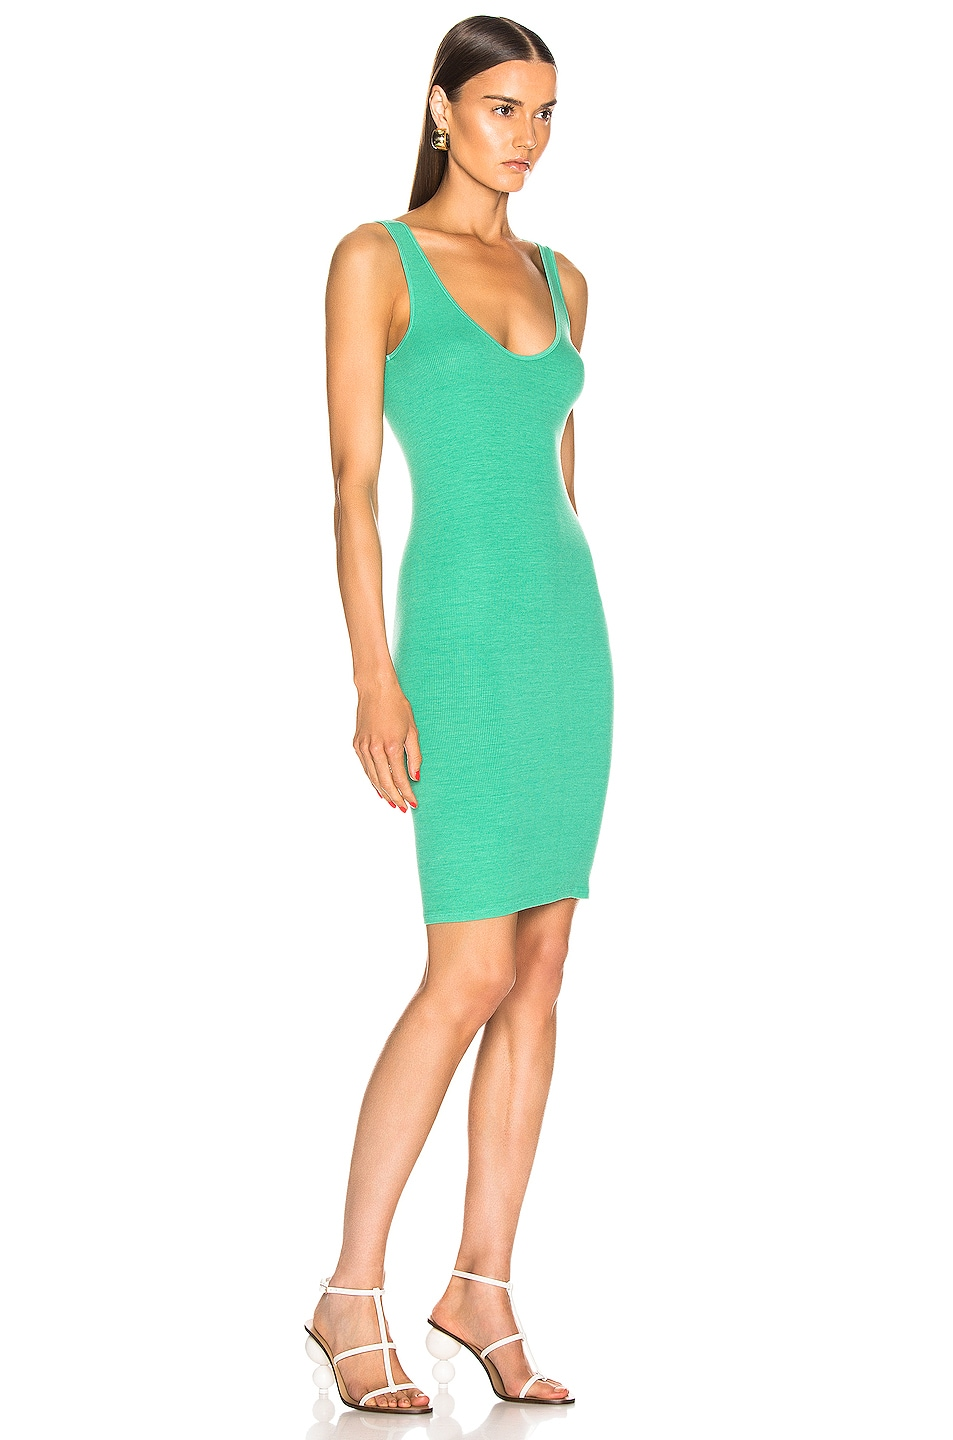 Image 2 of Enza Costa for FWRD Rib Tank Dress in Jade Green